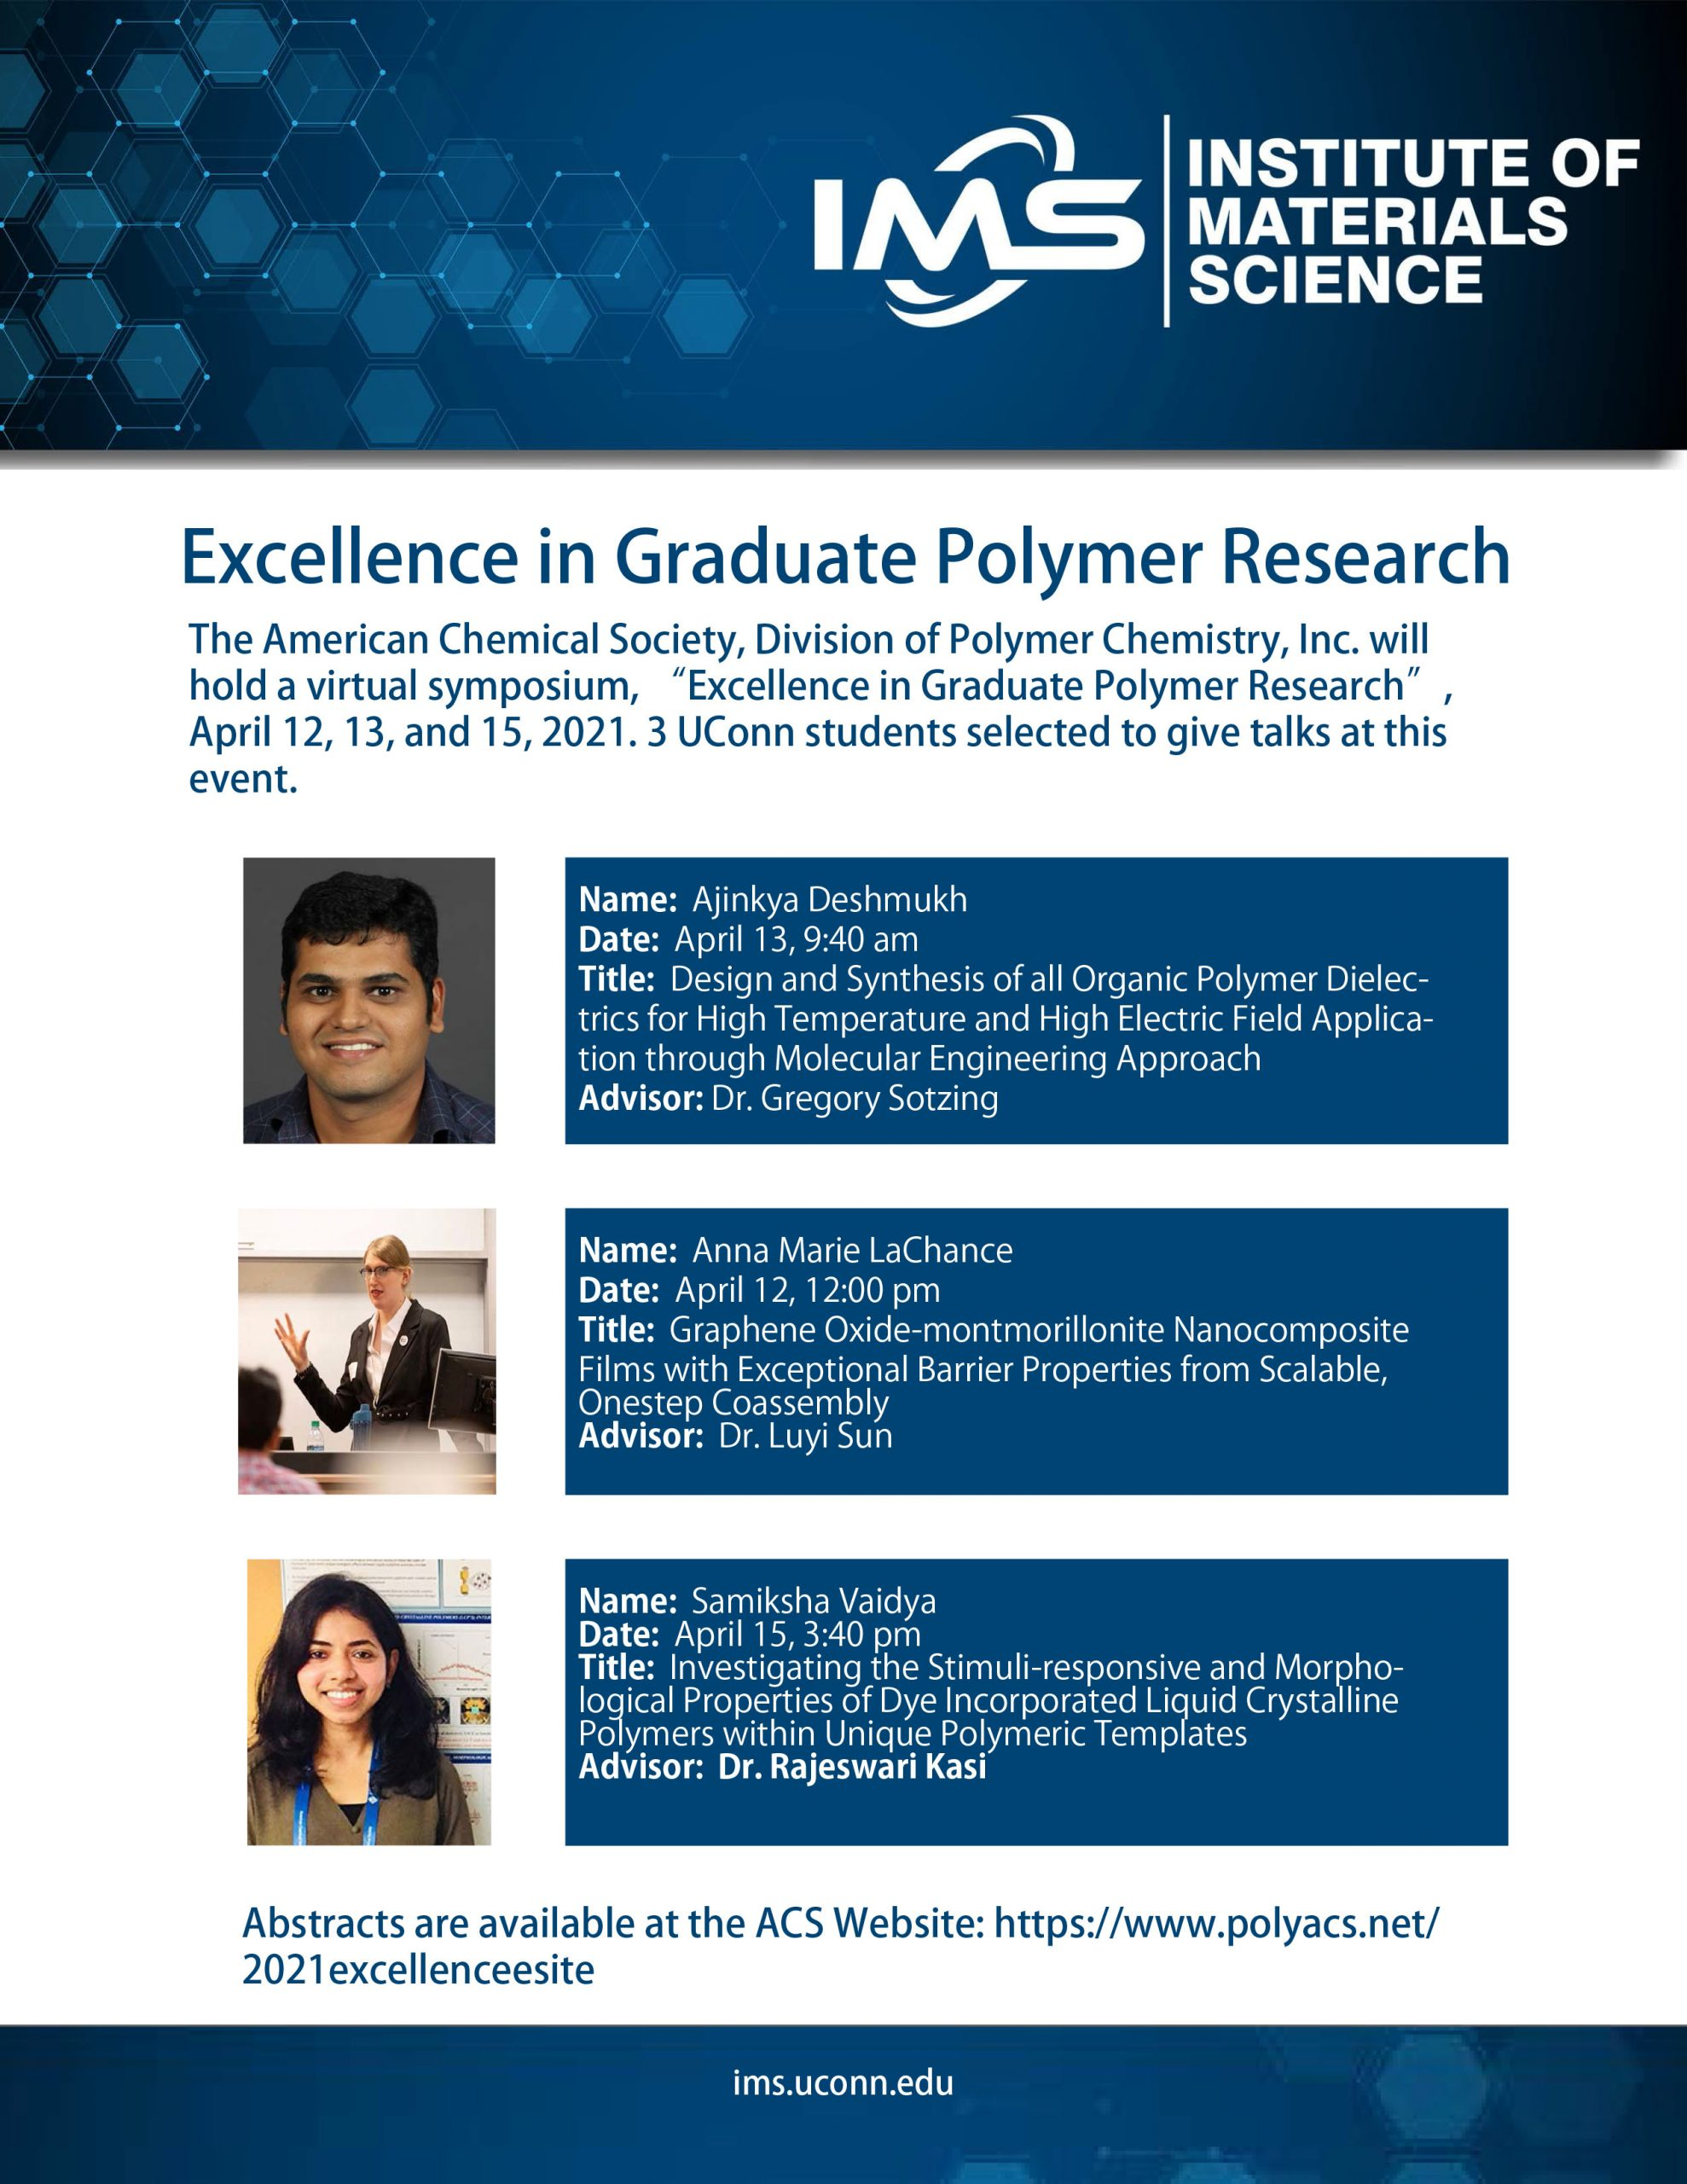 Excellence in Graduate Polymer Research Event